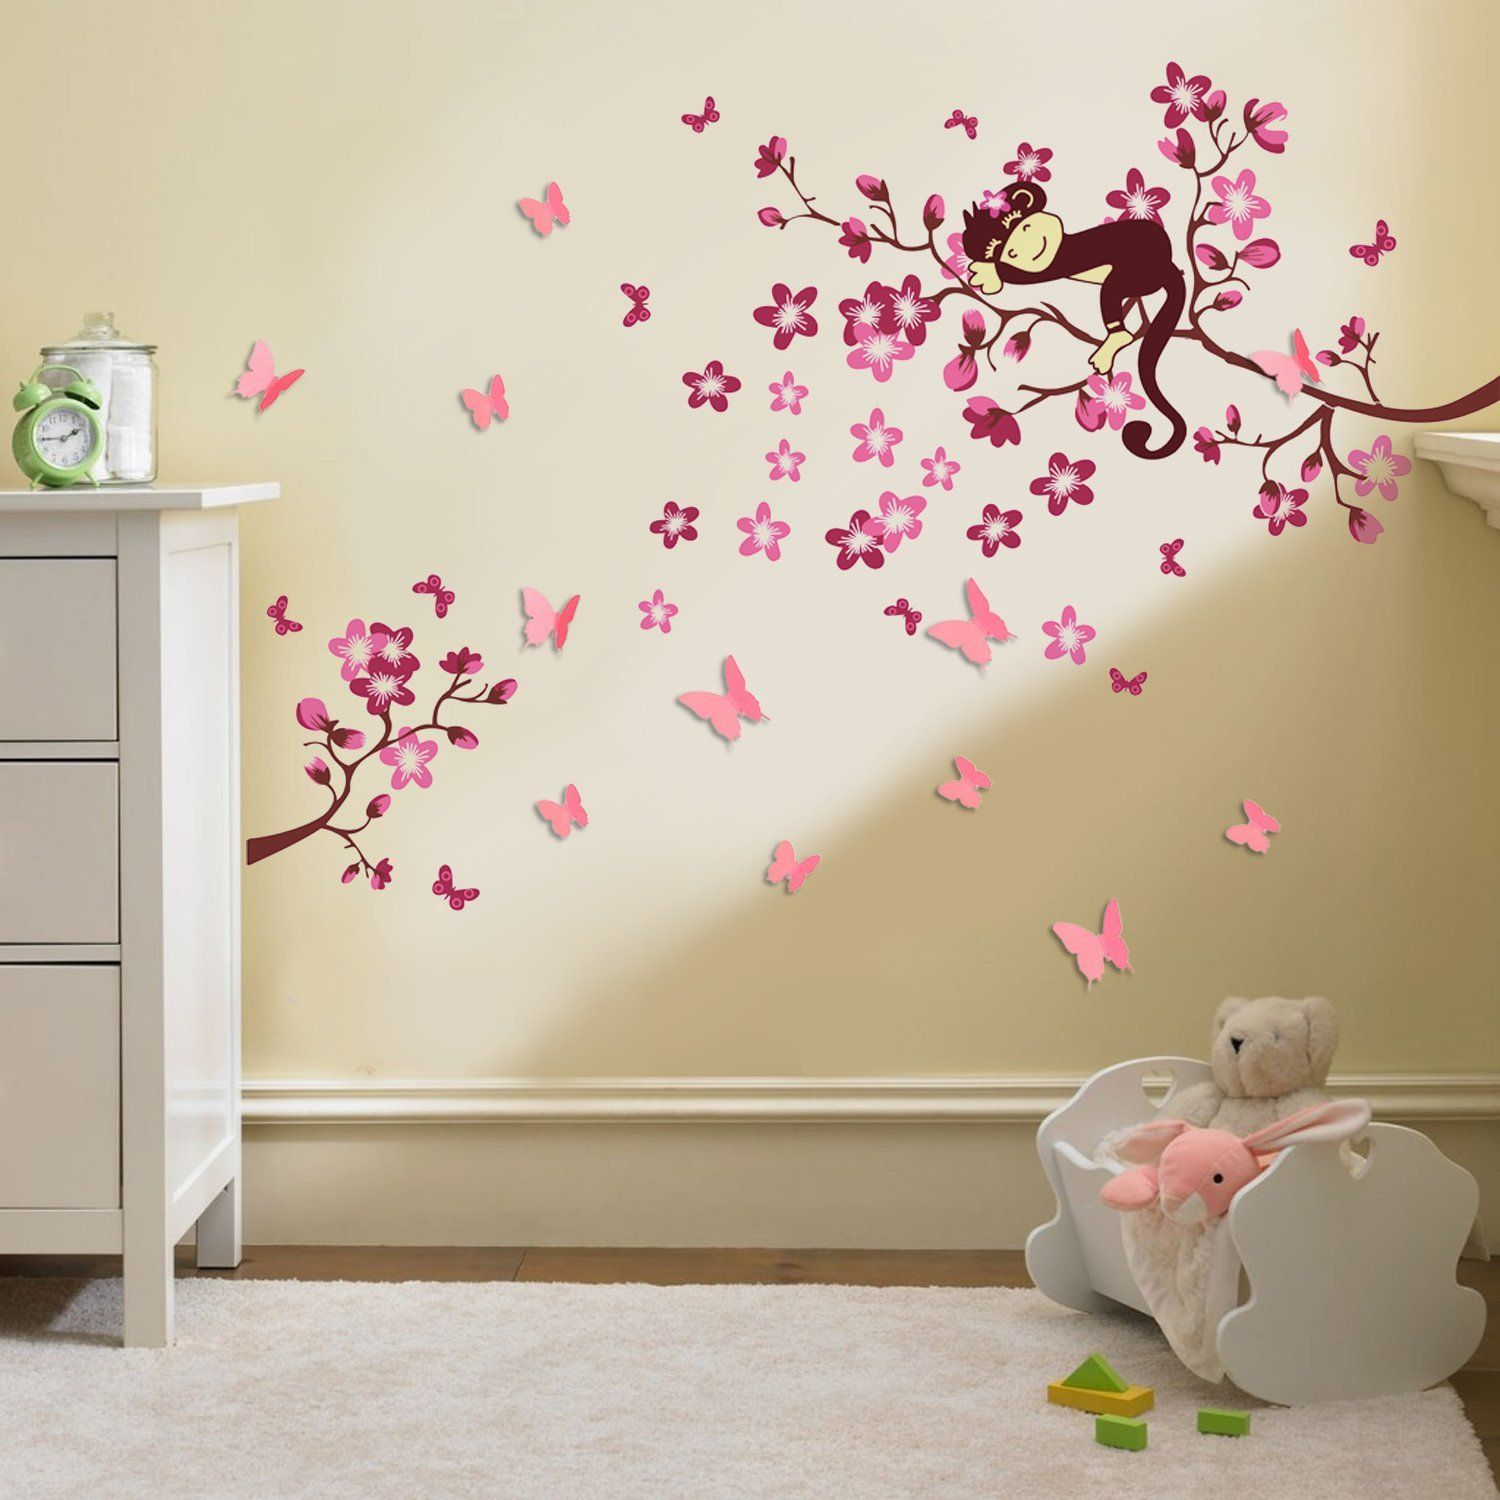 walplus stickers muraux 3d pour chambre d enfant papillons fleurs baby nursery joyful baby nursery wall decal combined with colorful drapery curtain and round pendant lamps with rectangle cradle